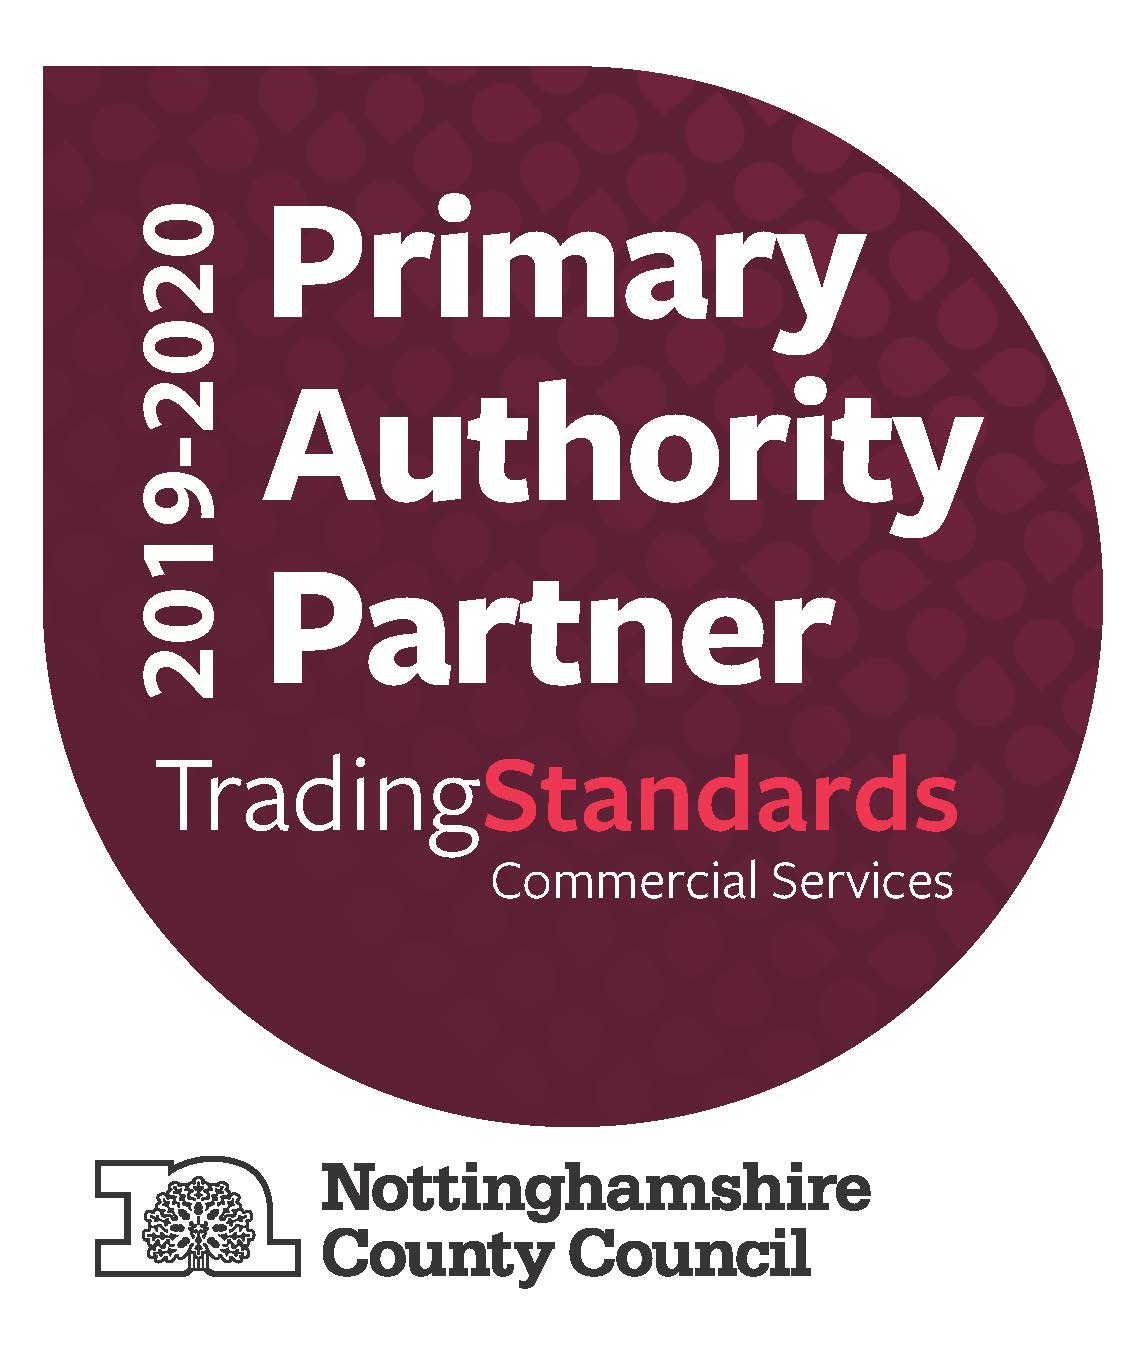 Primary Authority Partner